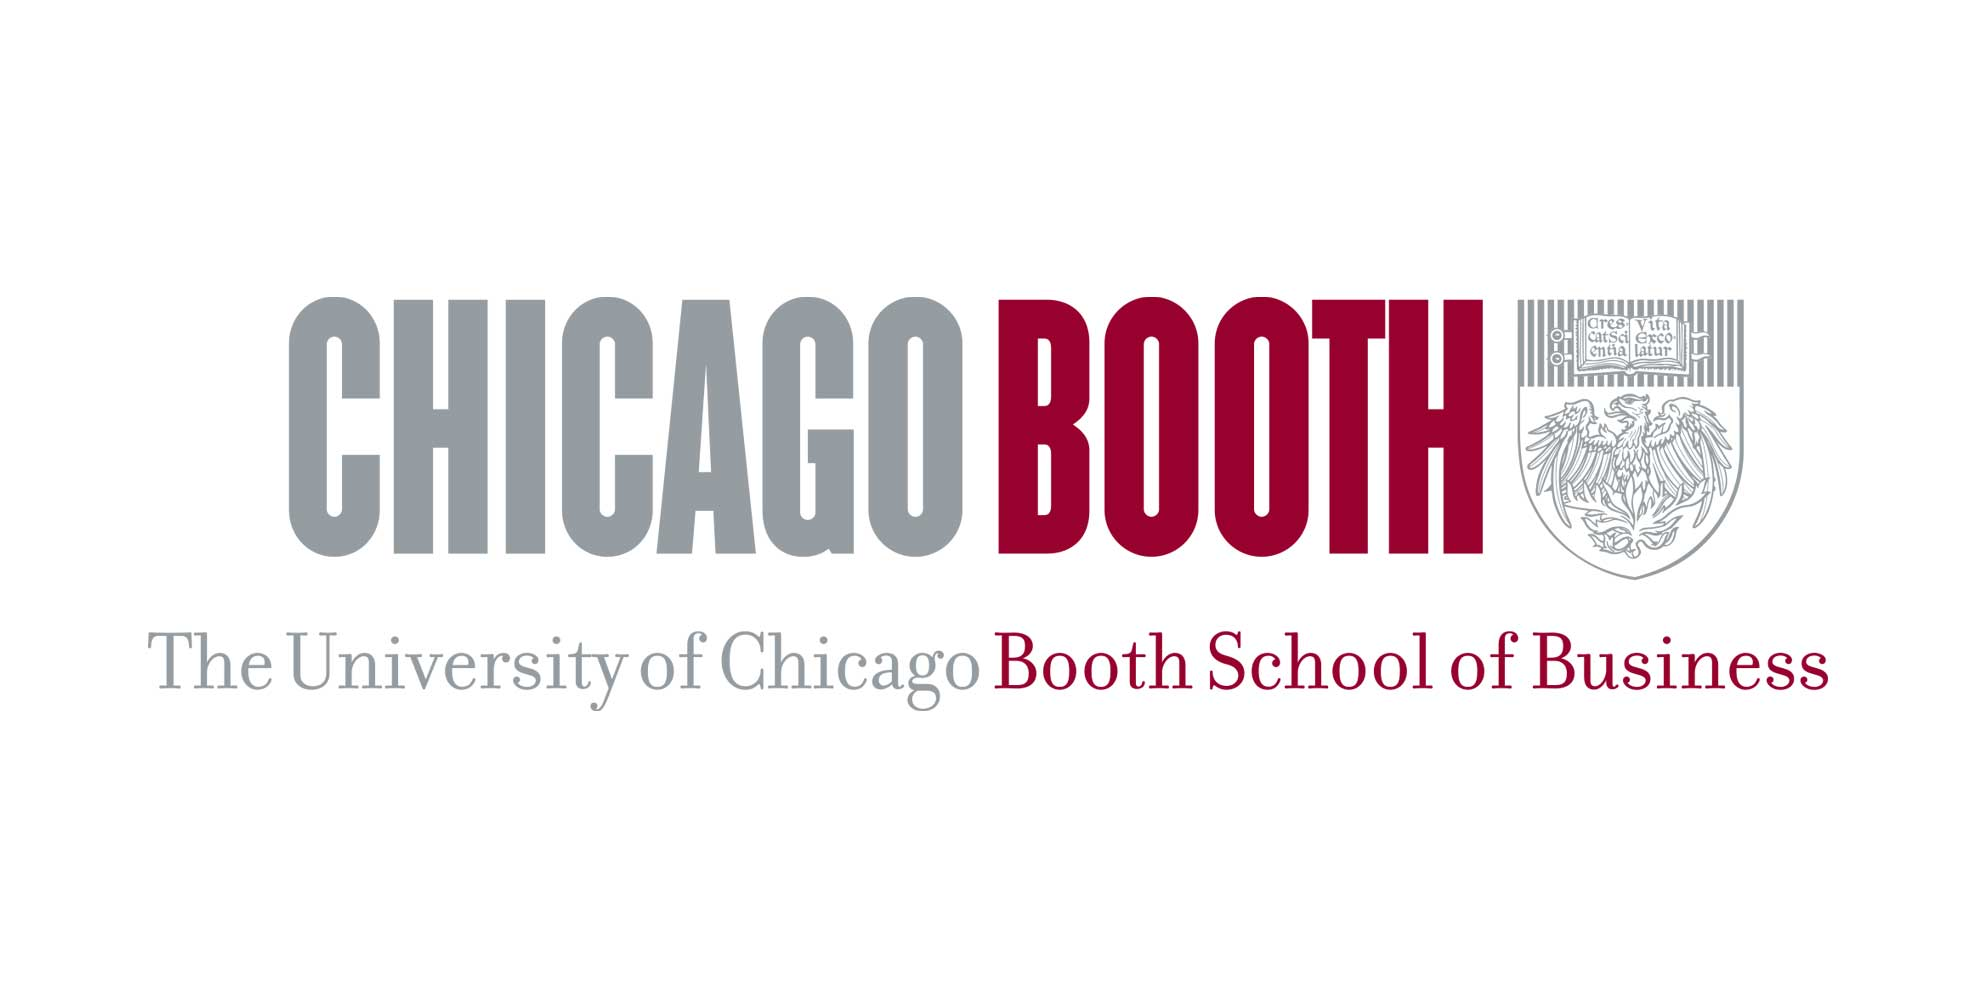 chicago booth mba essay analysis  chicago booth mba essay analysis 2016 17 33437211522173322823234162406726031218302341638498